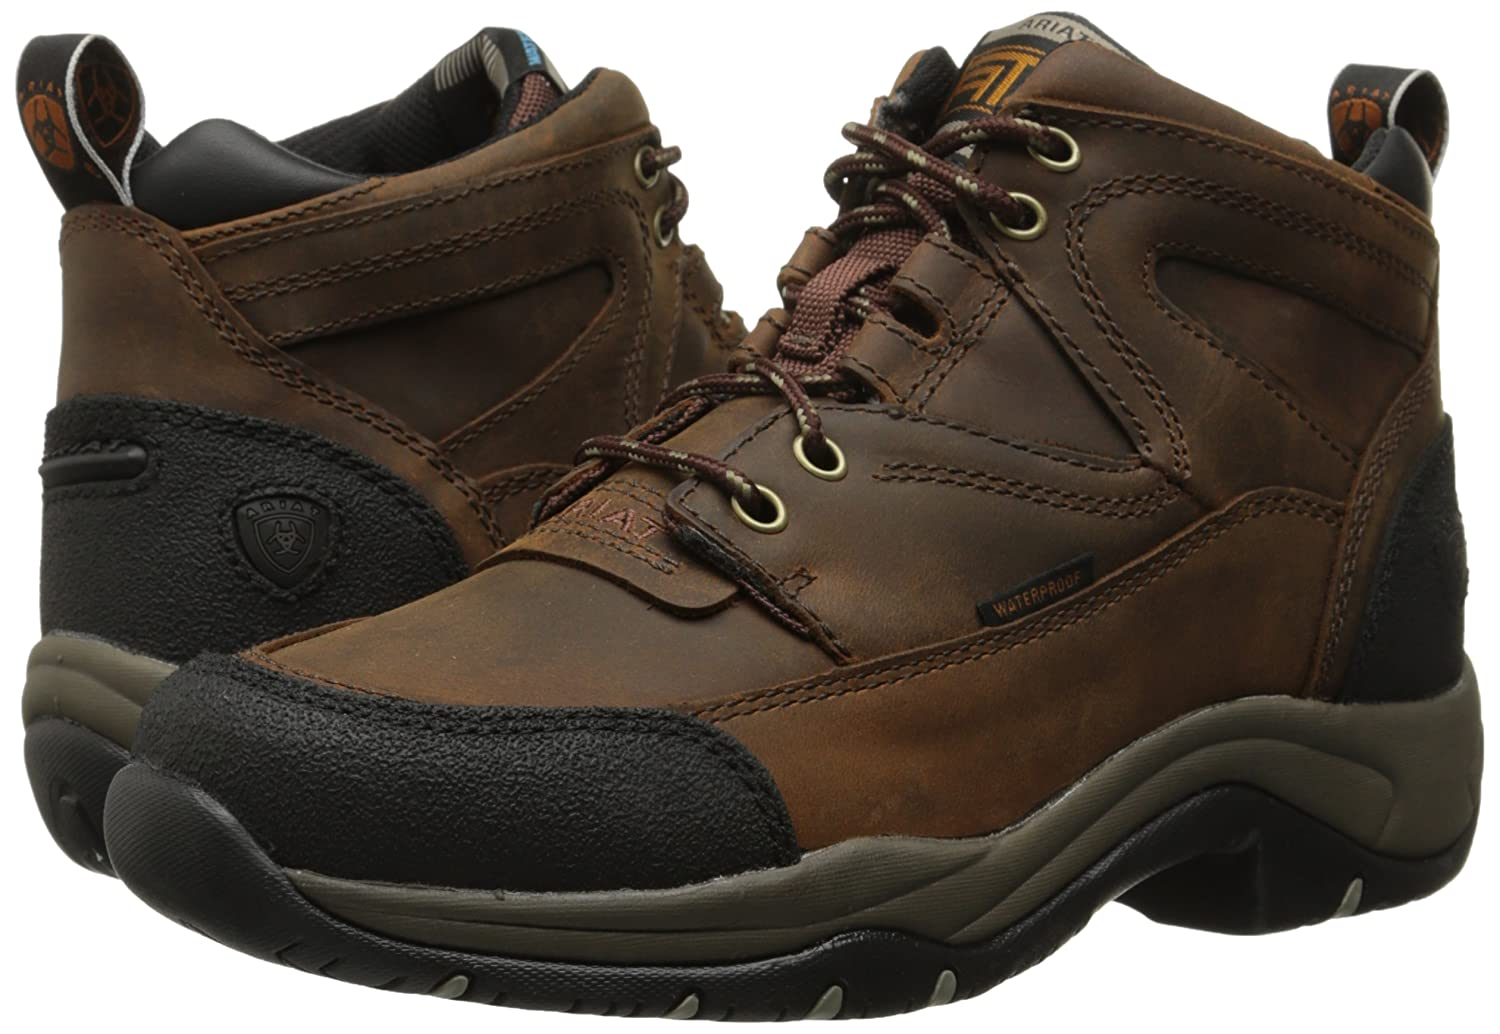 Ariat Women's Terrain H2O 11 Hiking Boot Copper B0012MMWMO 11 H2O B(M) US|Copper 6944b7